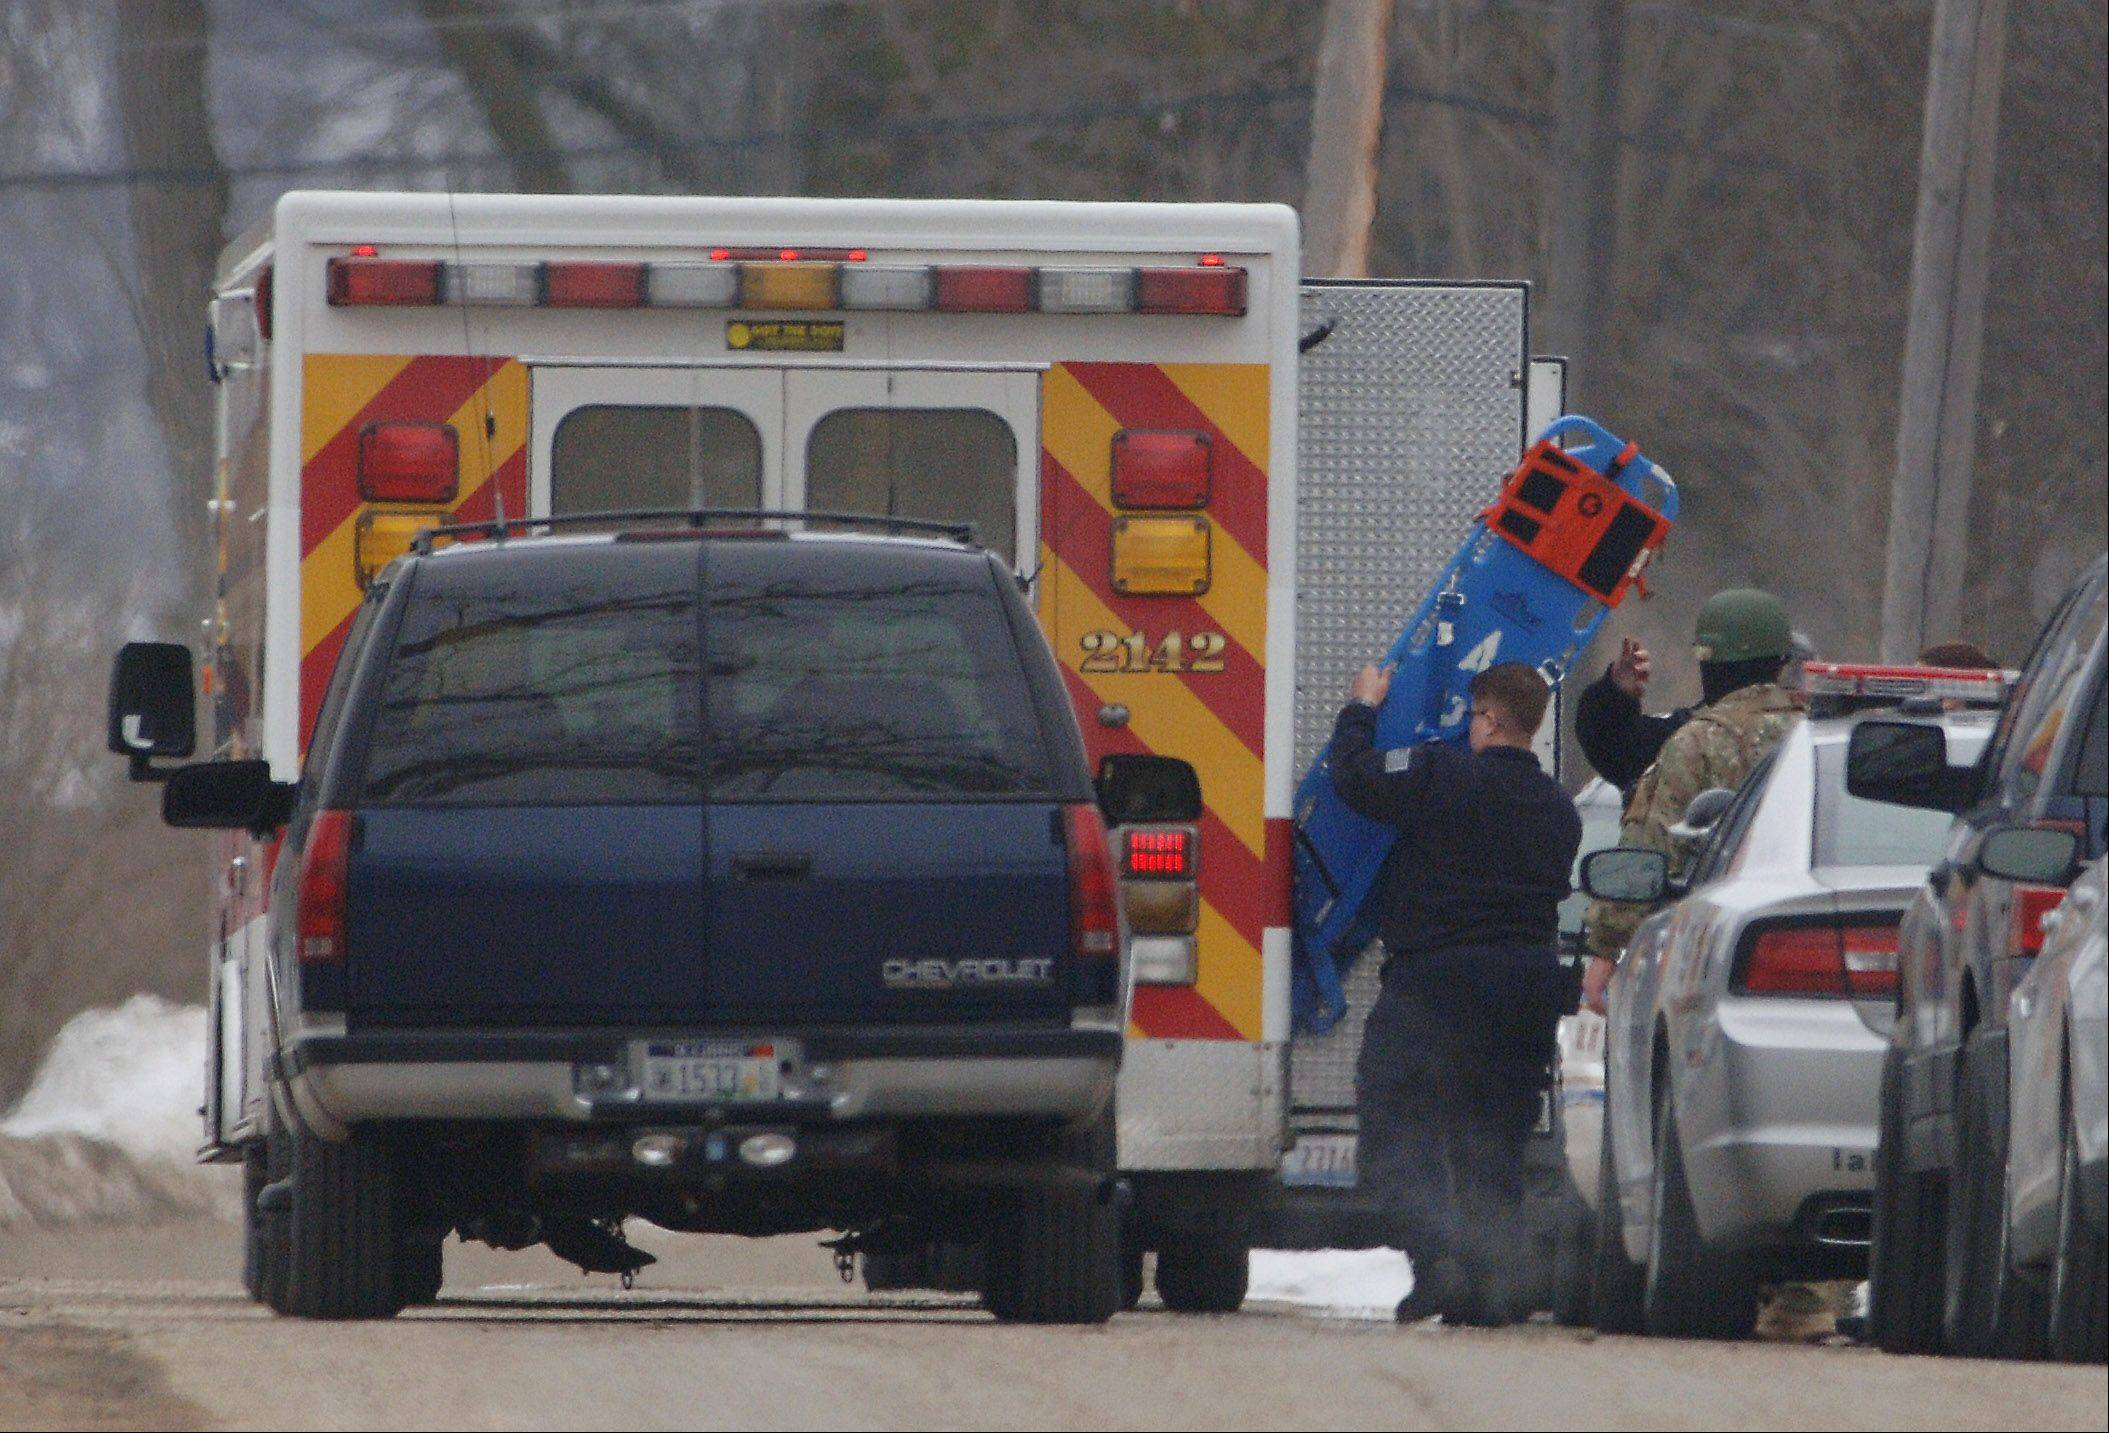 An ambulance arrives in an Antioch Township neighborhood after police found murder suspect Paul Neff had killed himself Friday morning. Police say Neff killed his ex-girlfriend Diane Kephart that morning.